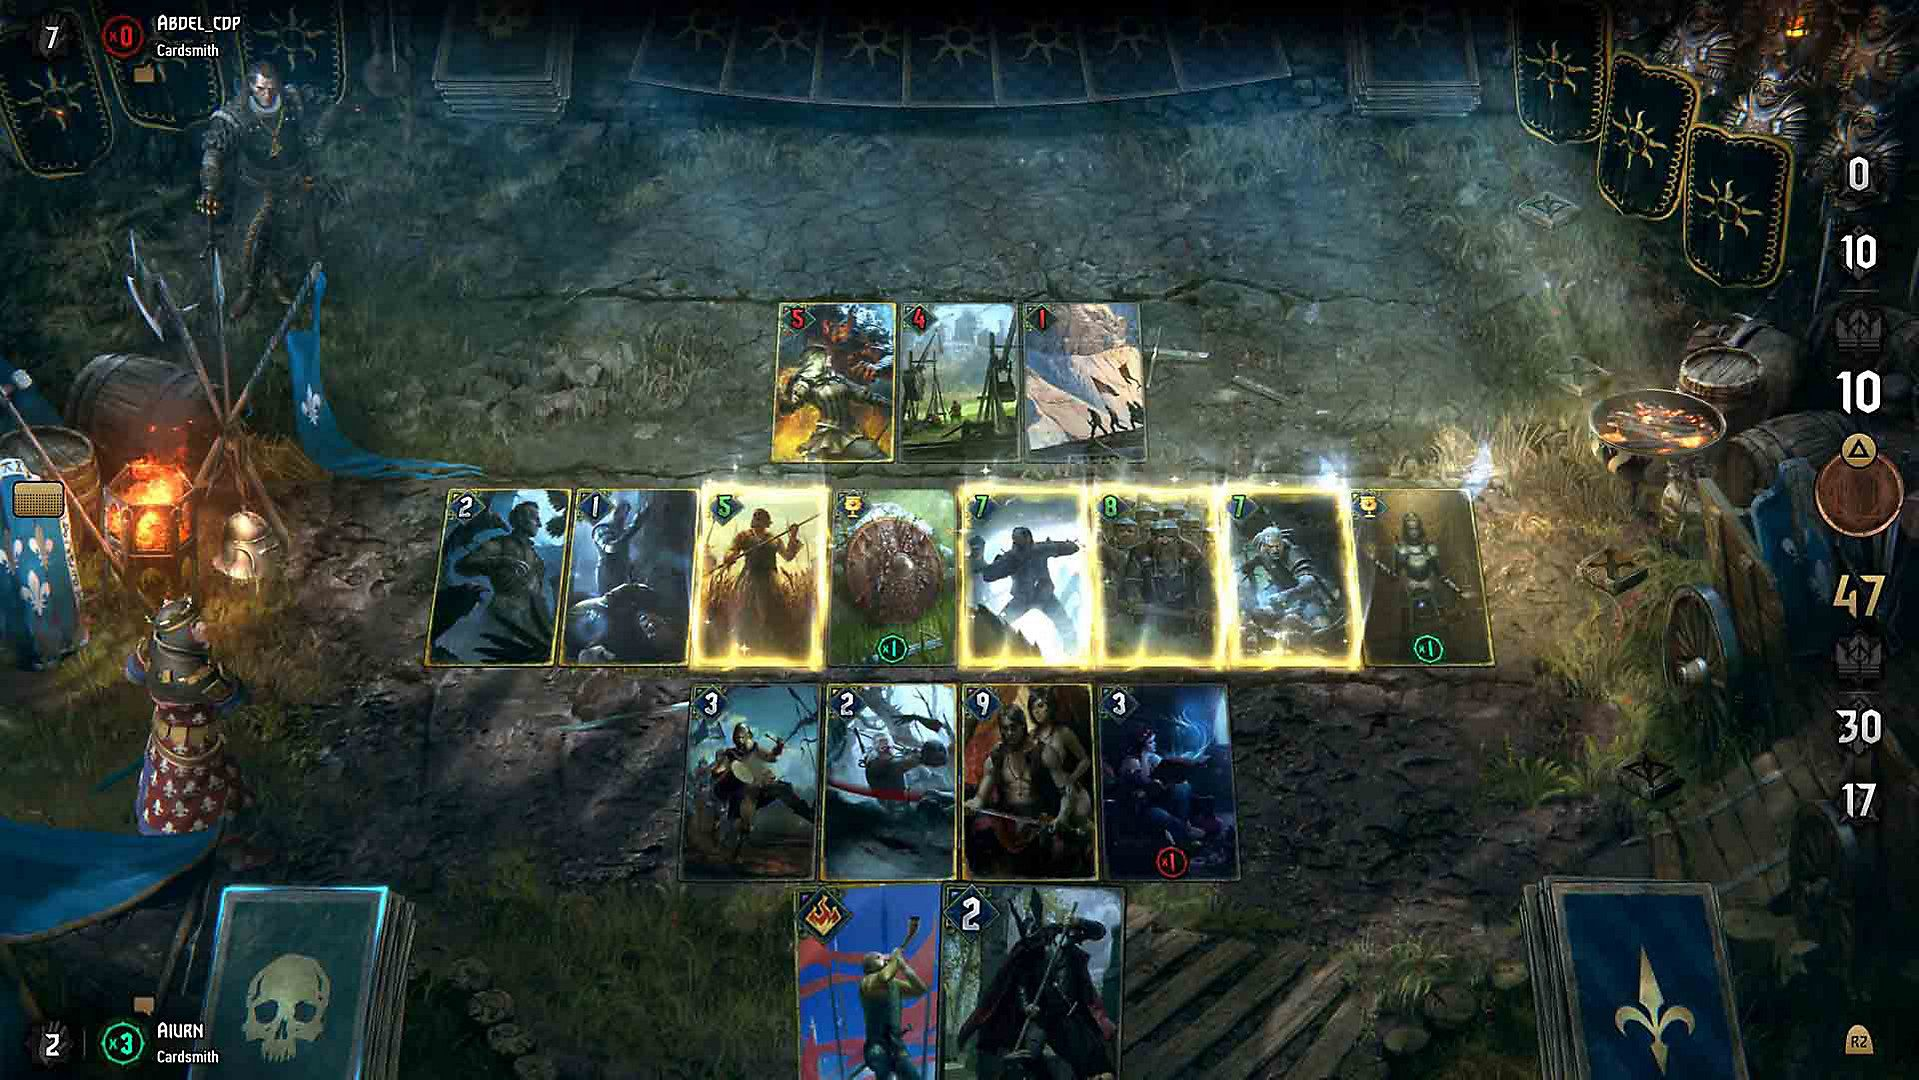 gwent-android-jeu-carte-the-witcher